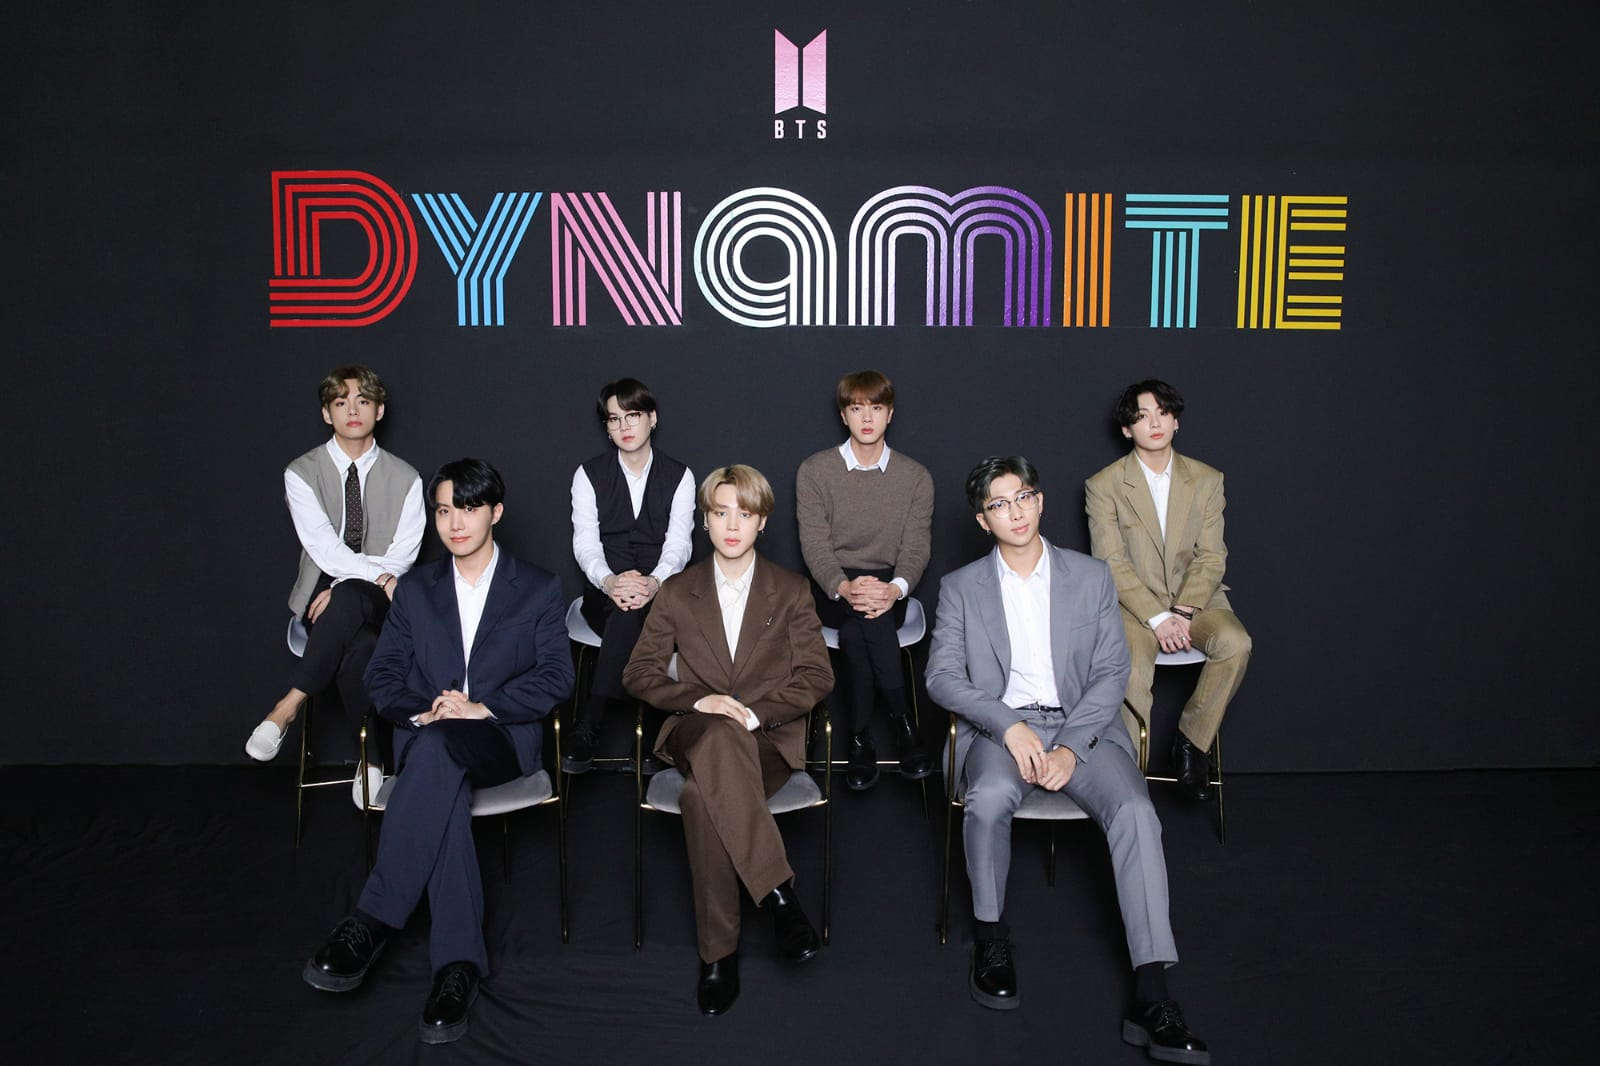 BTS Dynamite: The sparks spread to India